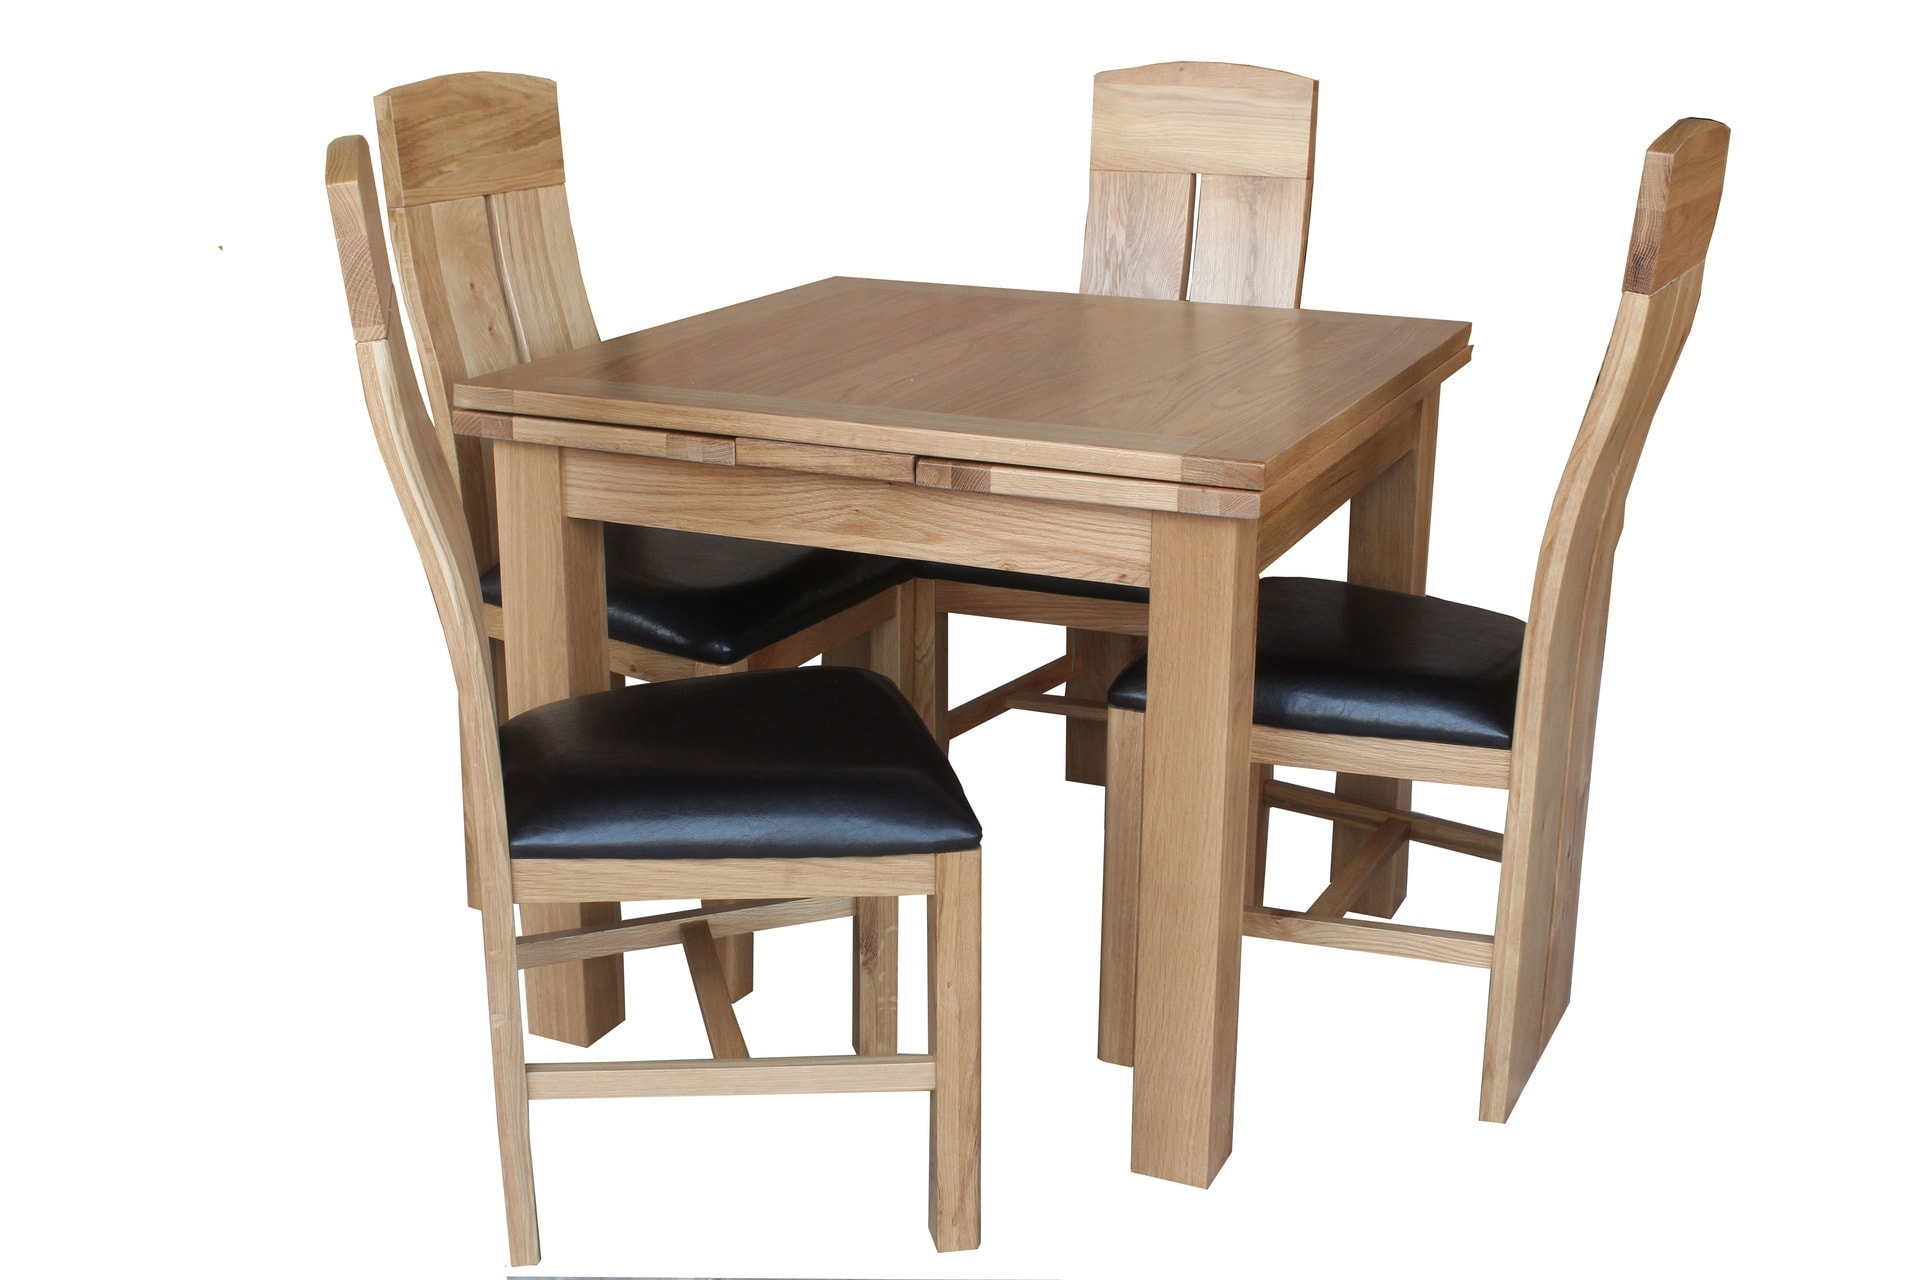 Dining Room Furniture Vancouver: Chair, Upholstered, Table, Dining, Dining Set, Sets, Table